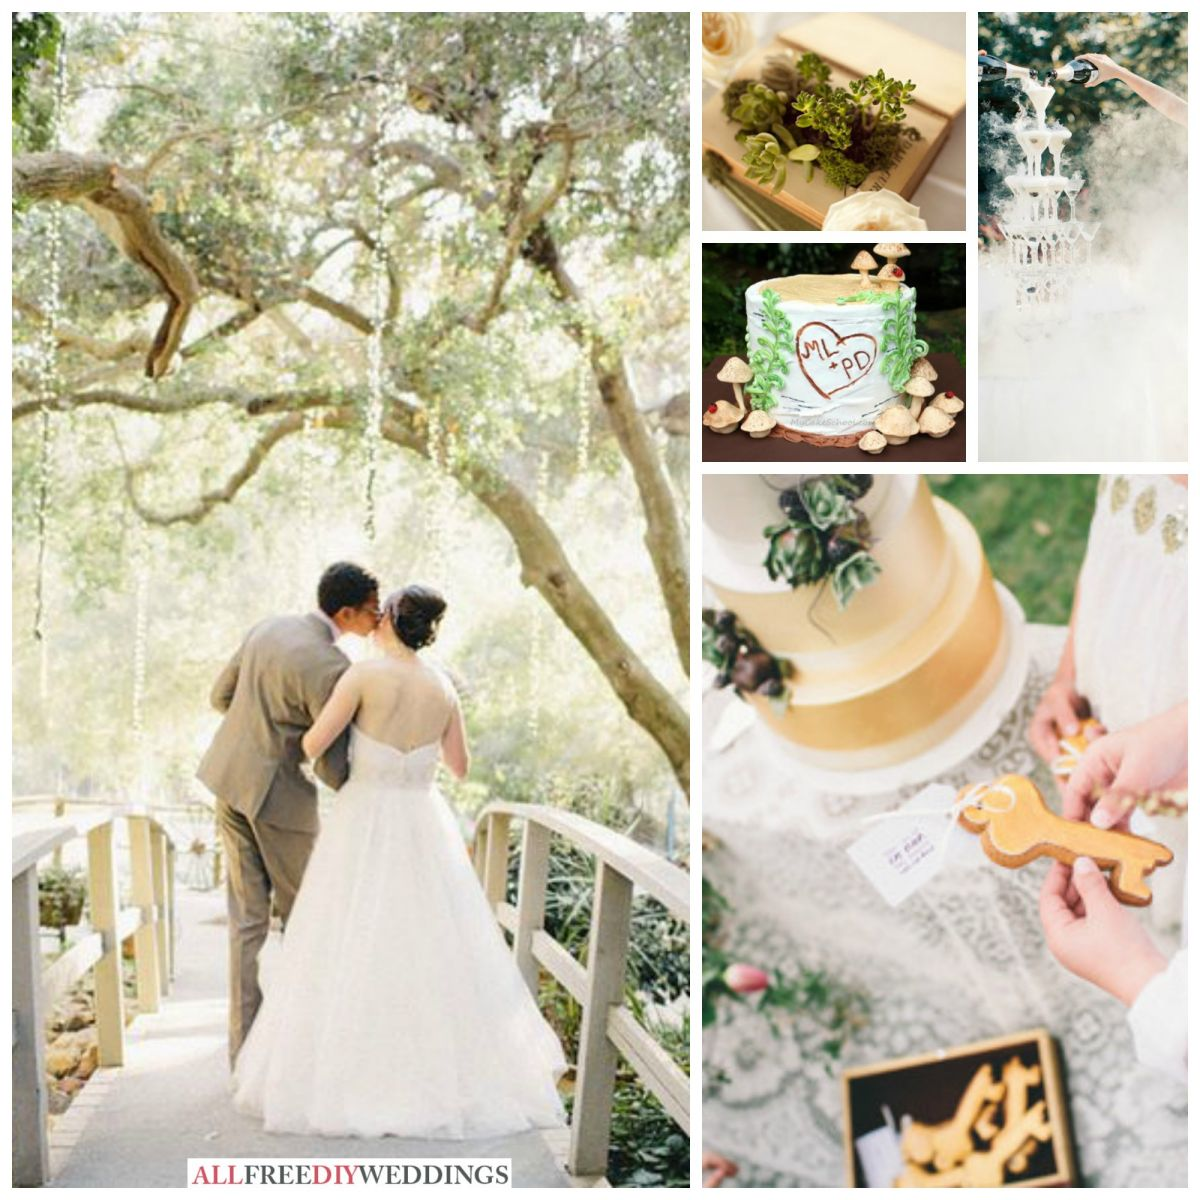 Wedding Themes Fairytale Wedding Allfreediyweddings